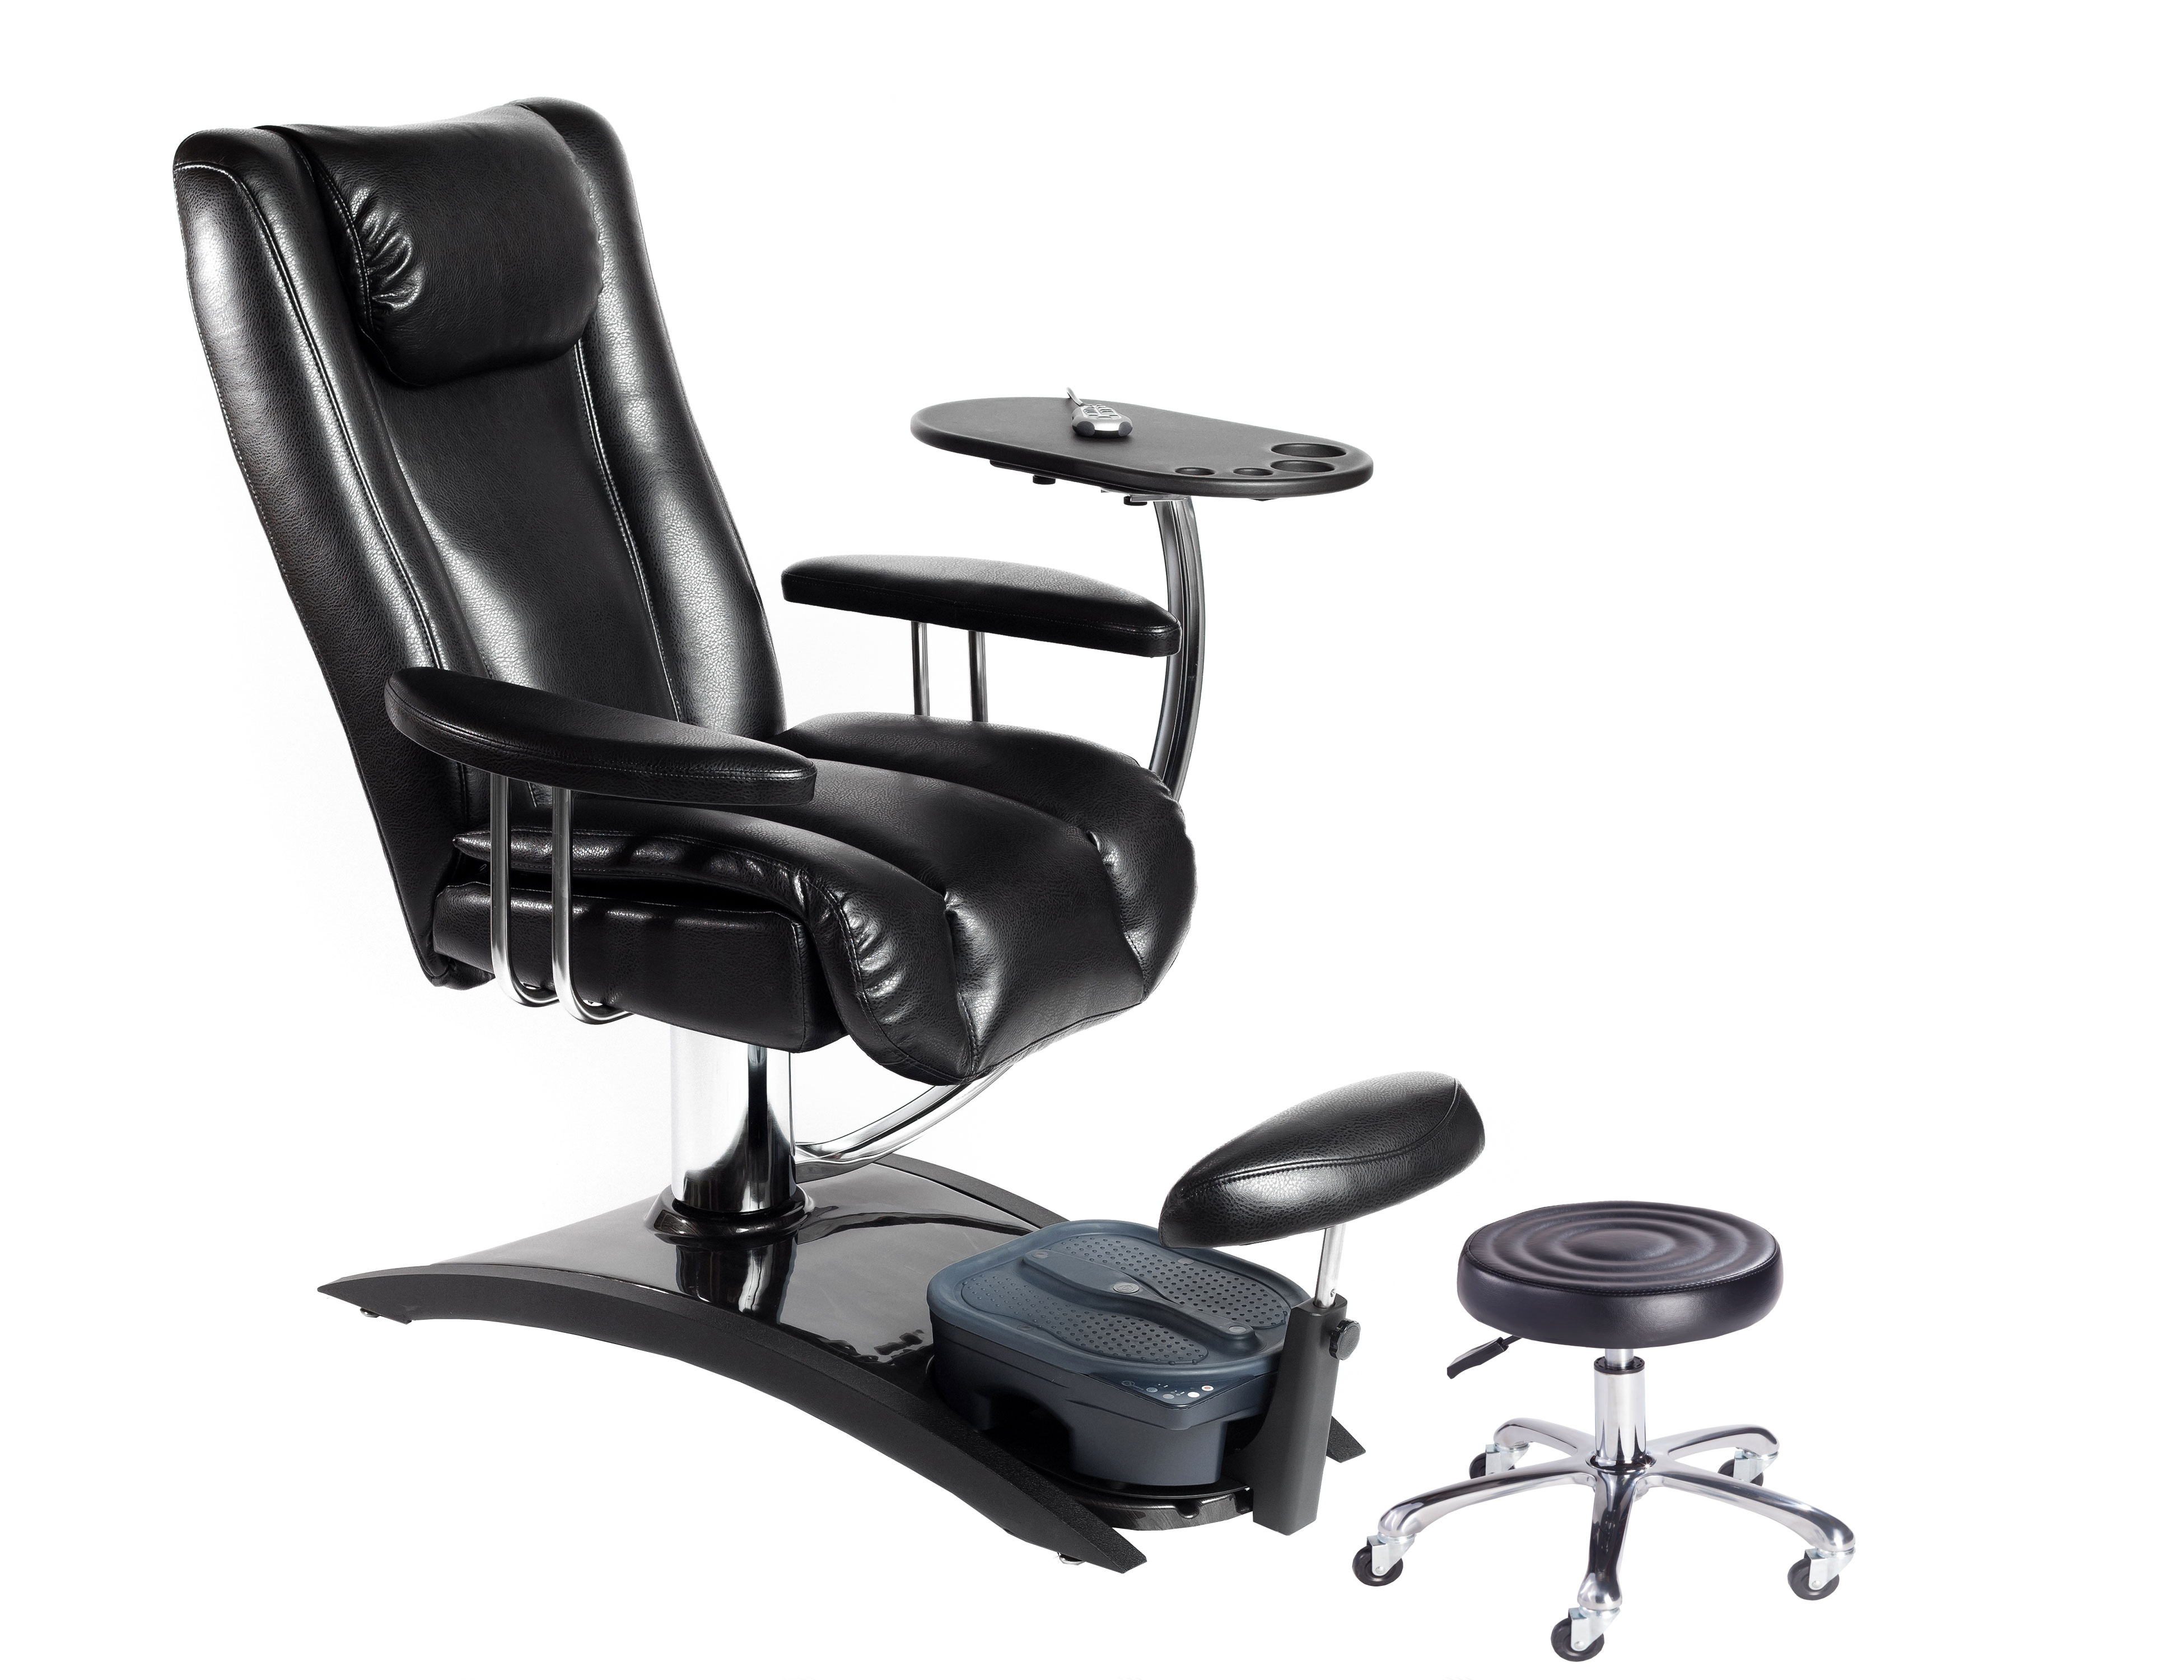 Belava Pedicure Chair Belava Quotno Plumbing Quot Embrace Pedicure Chair 43 Free Tech Stool